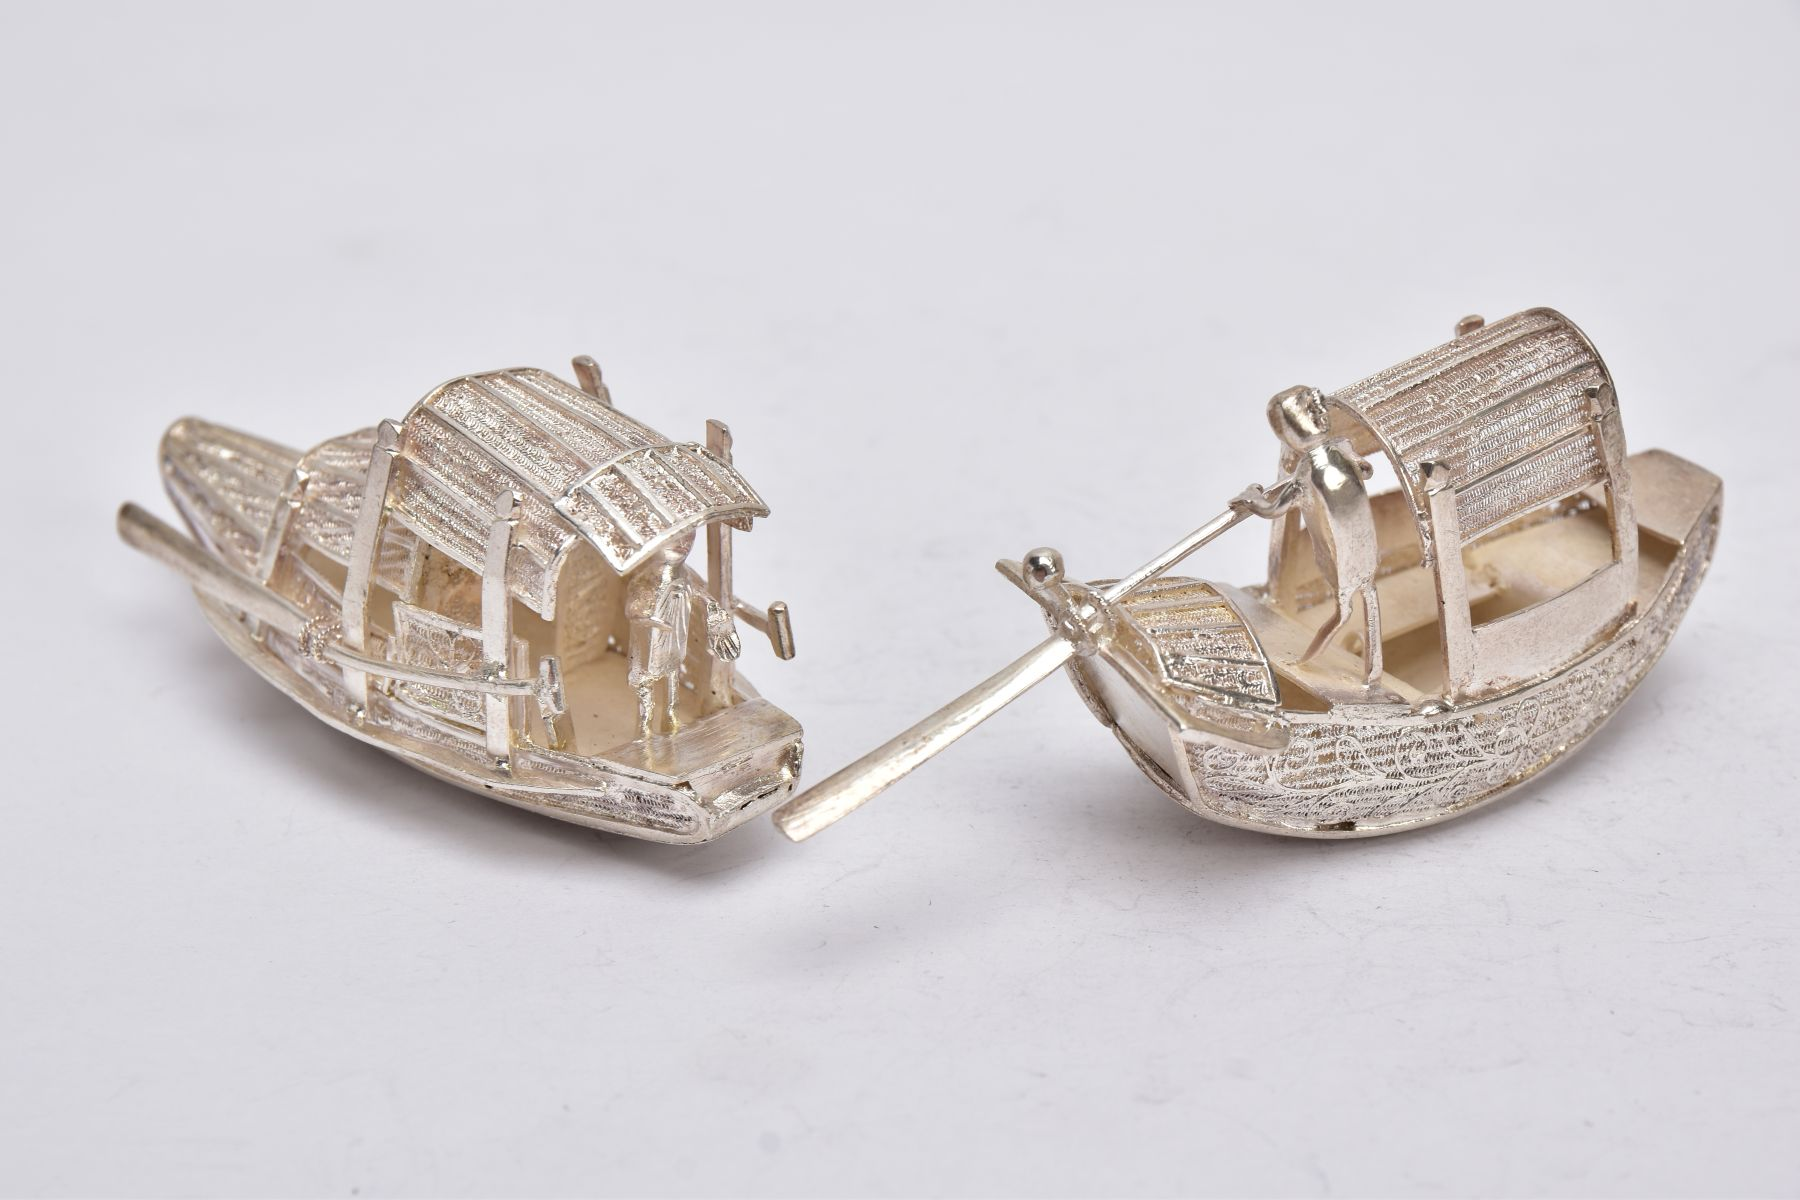 TWO MODERN ORIENTAL, WHITE METAL FILIGREE BOAT ORNAMENTS, one with a standing figure with paddle,